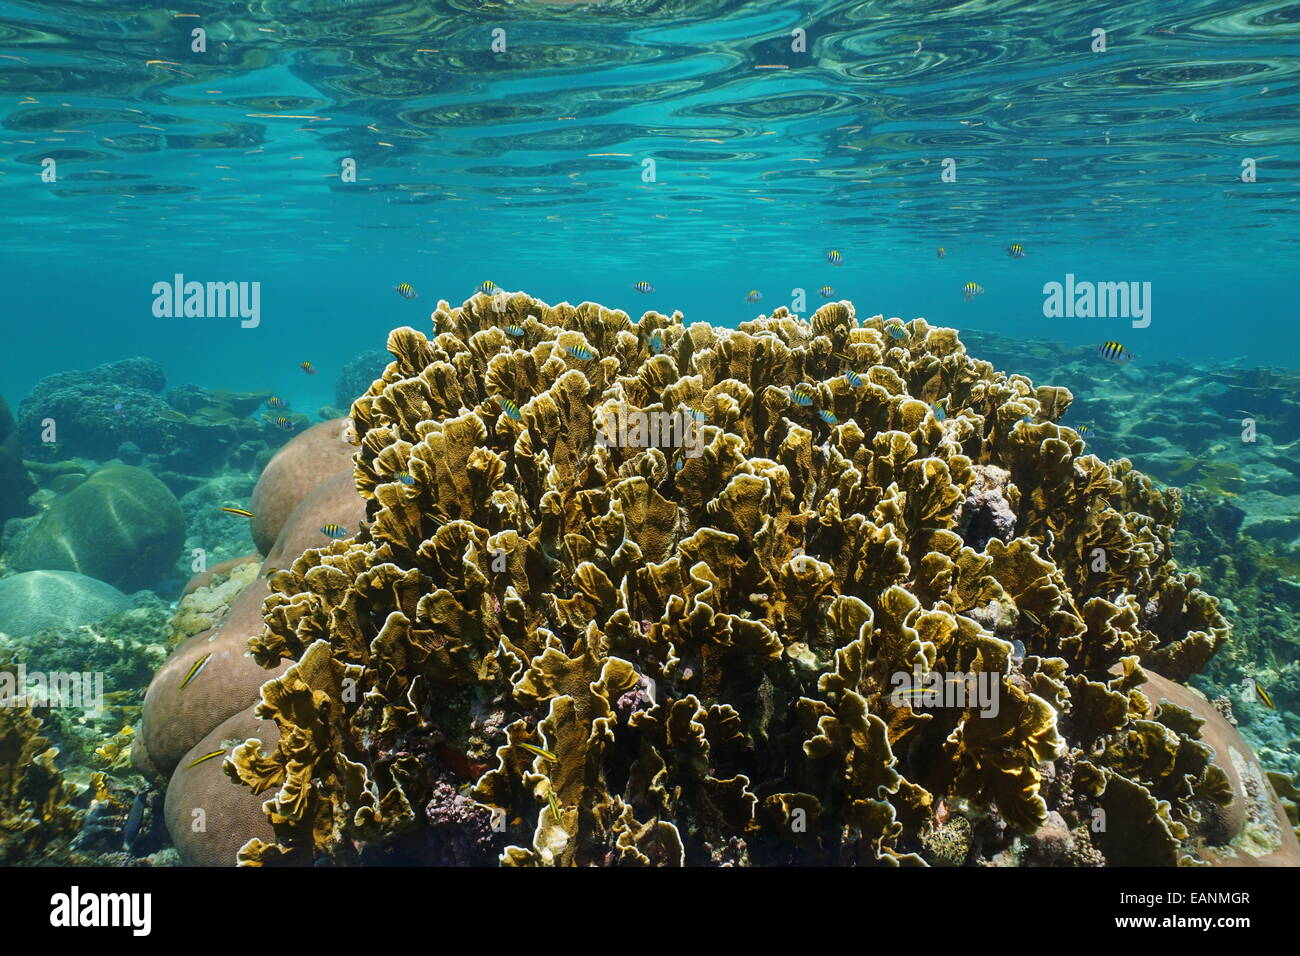 Bladed fire coral with small fish in a reef and ripples of underwater surface, Caribbean sea, Panama - Stock Image